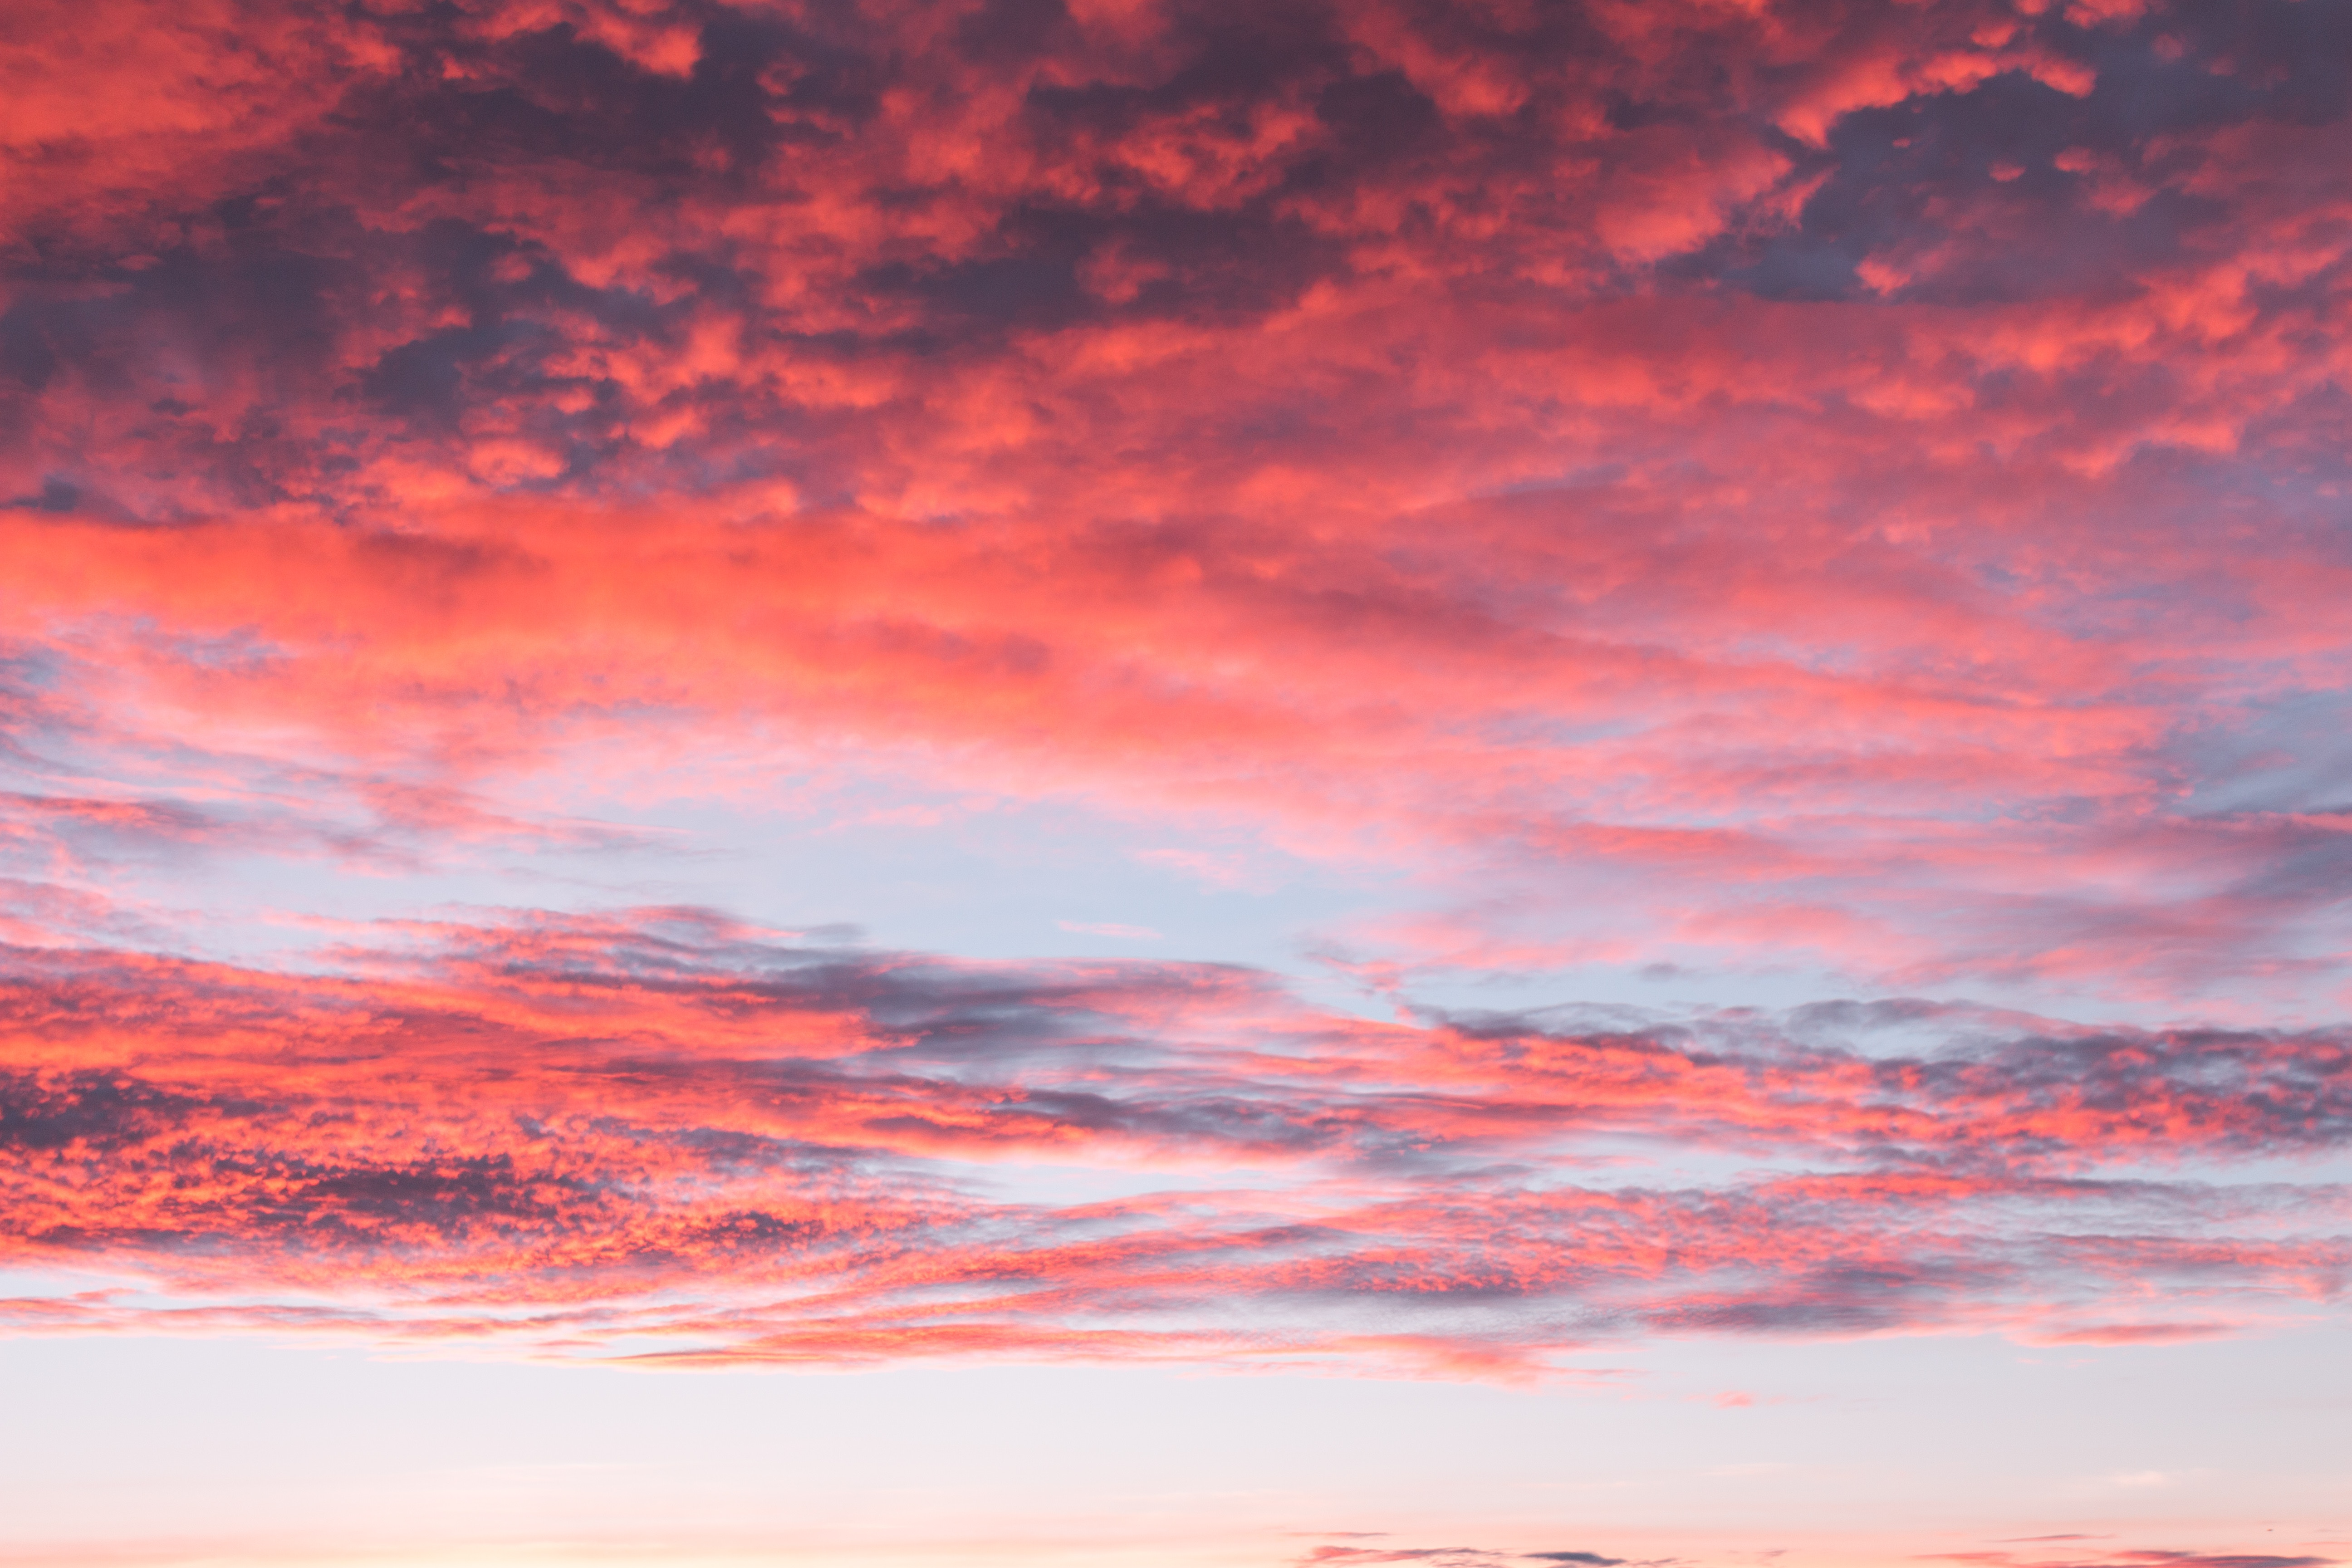 sunset sky png free sunset sky png transparent images 65699 pngio pngio com